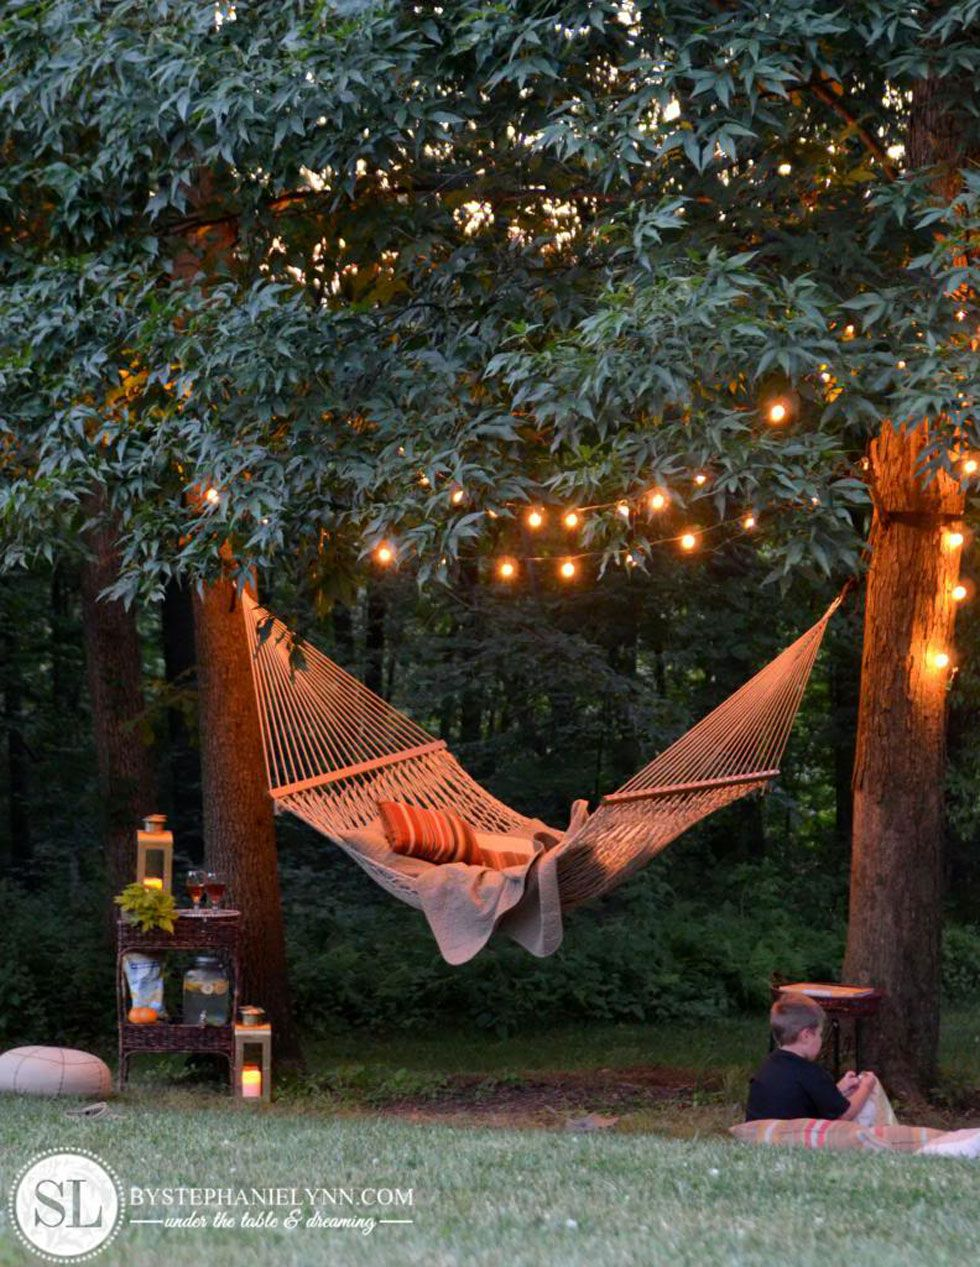 Buiten Boom Verlichting Affordable Diy Projects For Your Backyard Tuinen Tuin Tuin